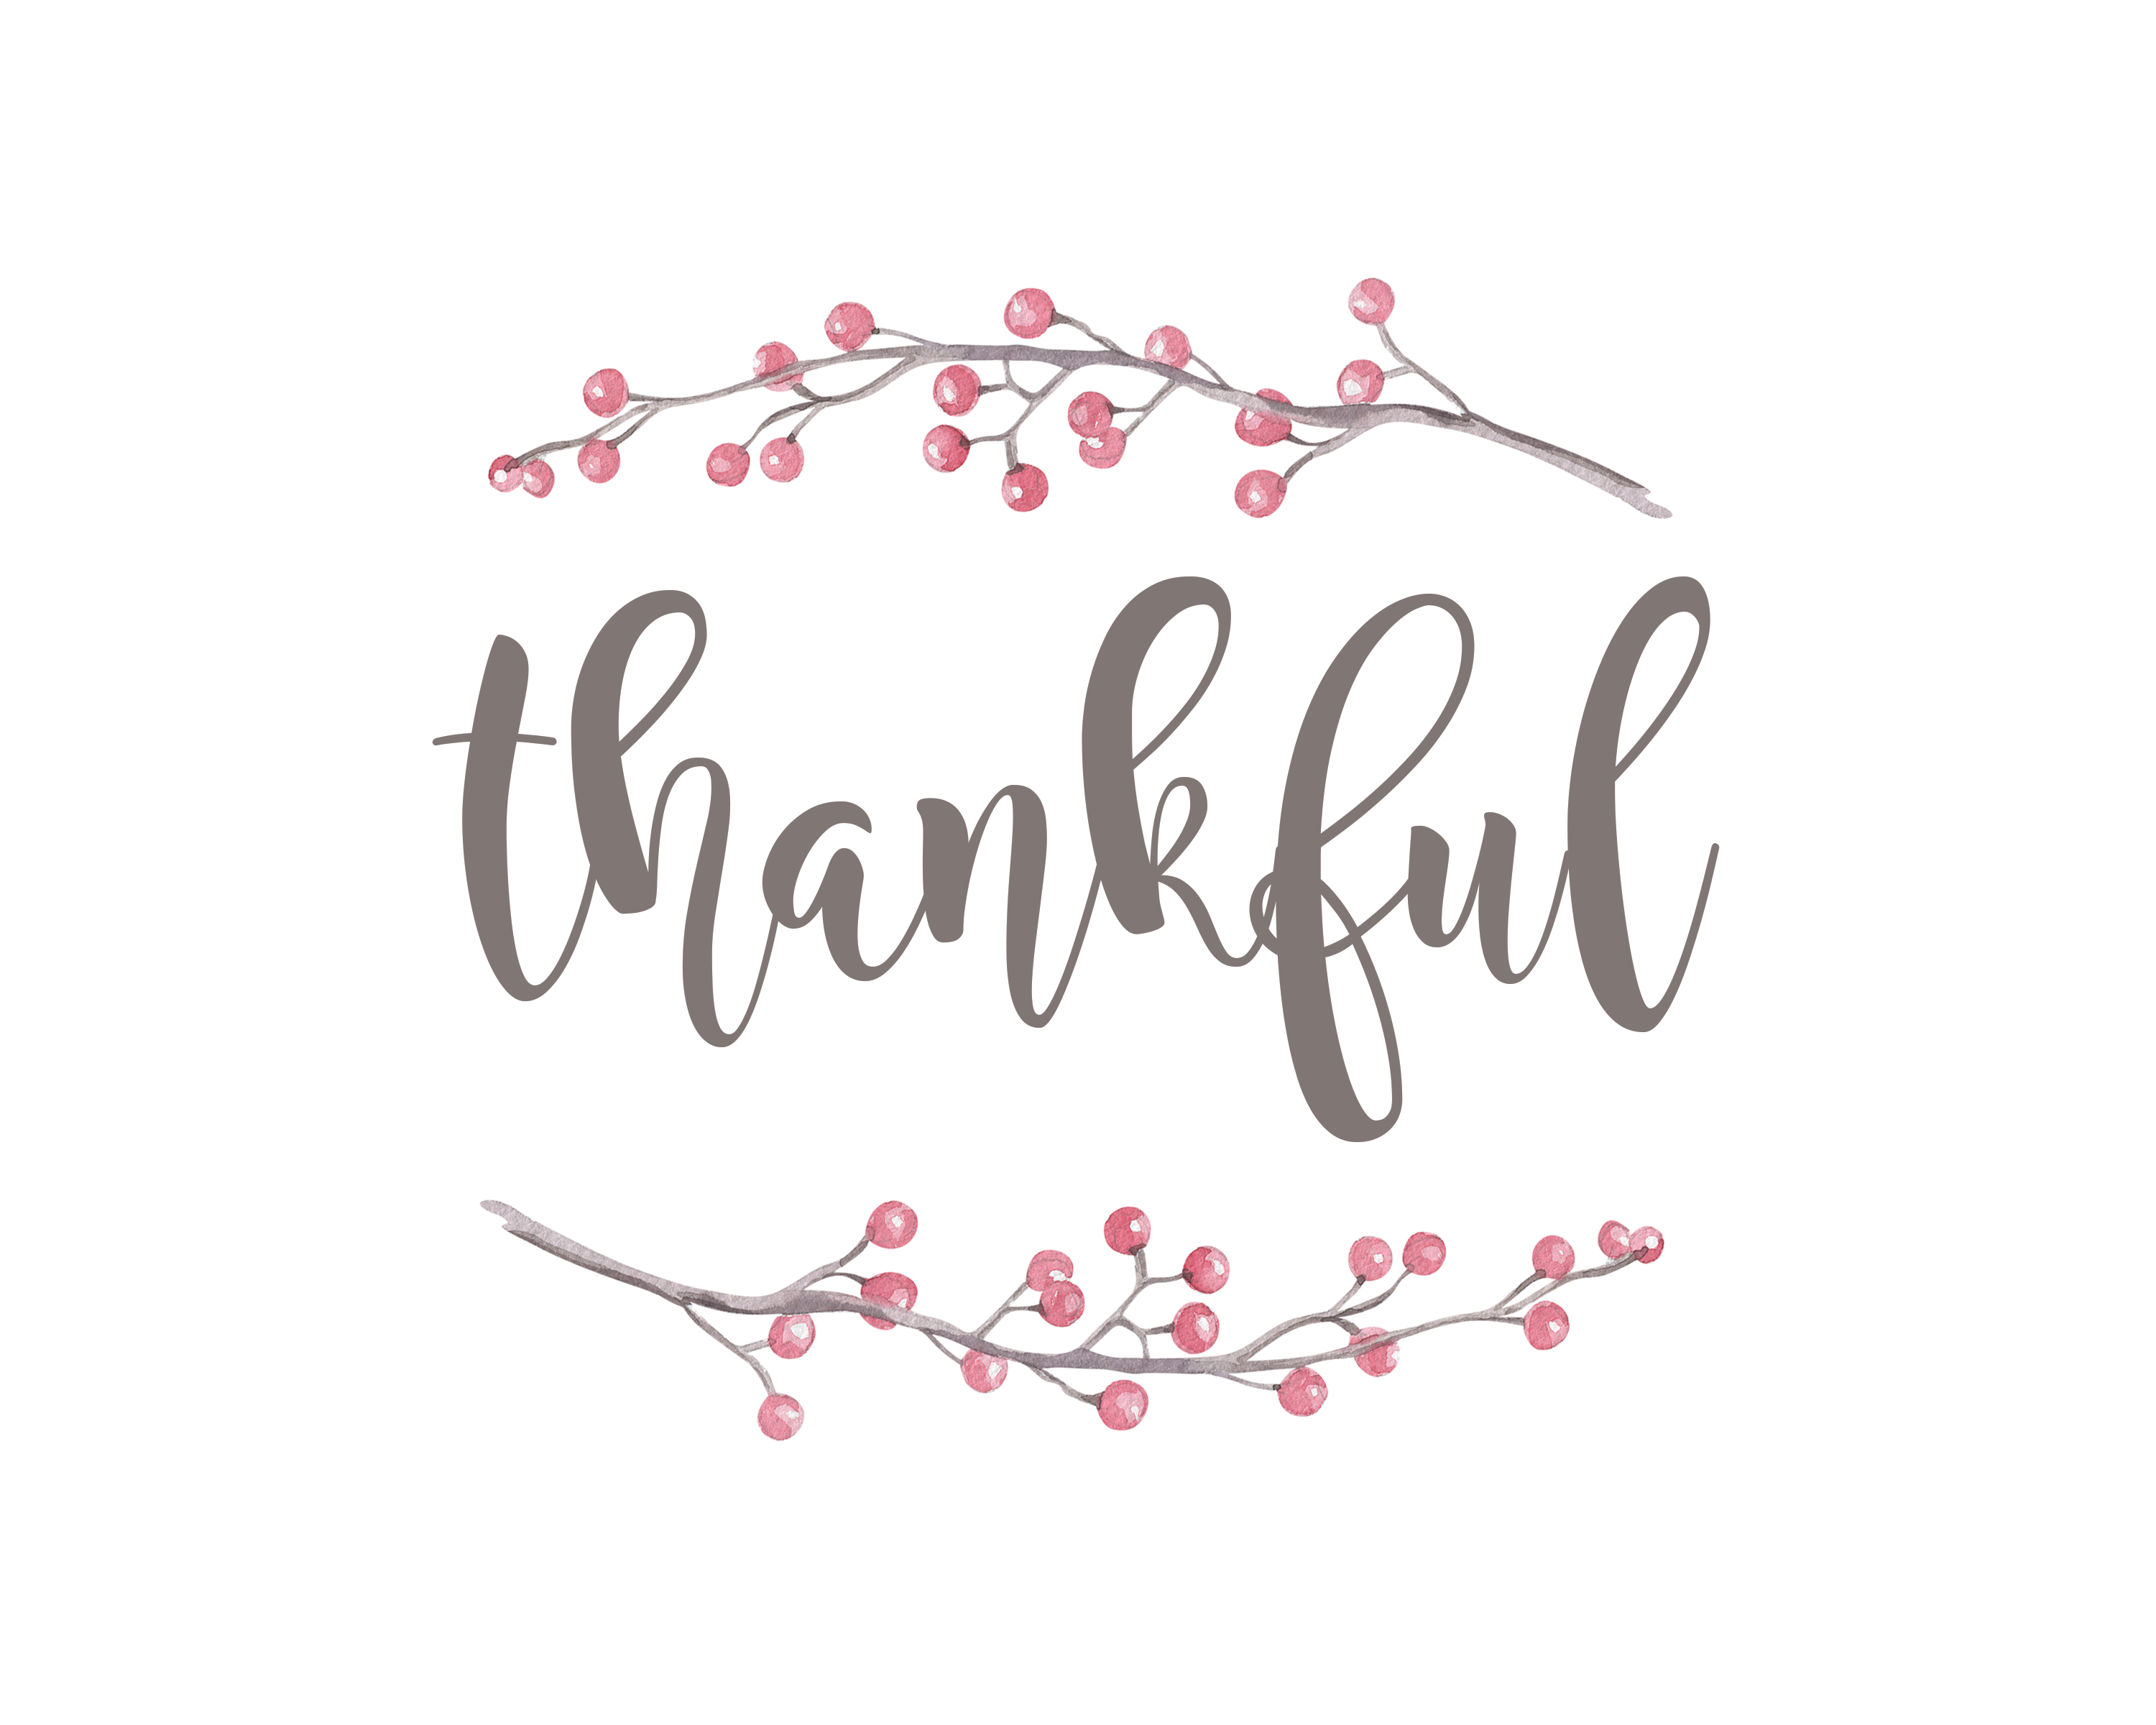 photo regarding Thankful Printable referred to as grateful-printable - One particular Street at a Year